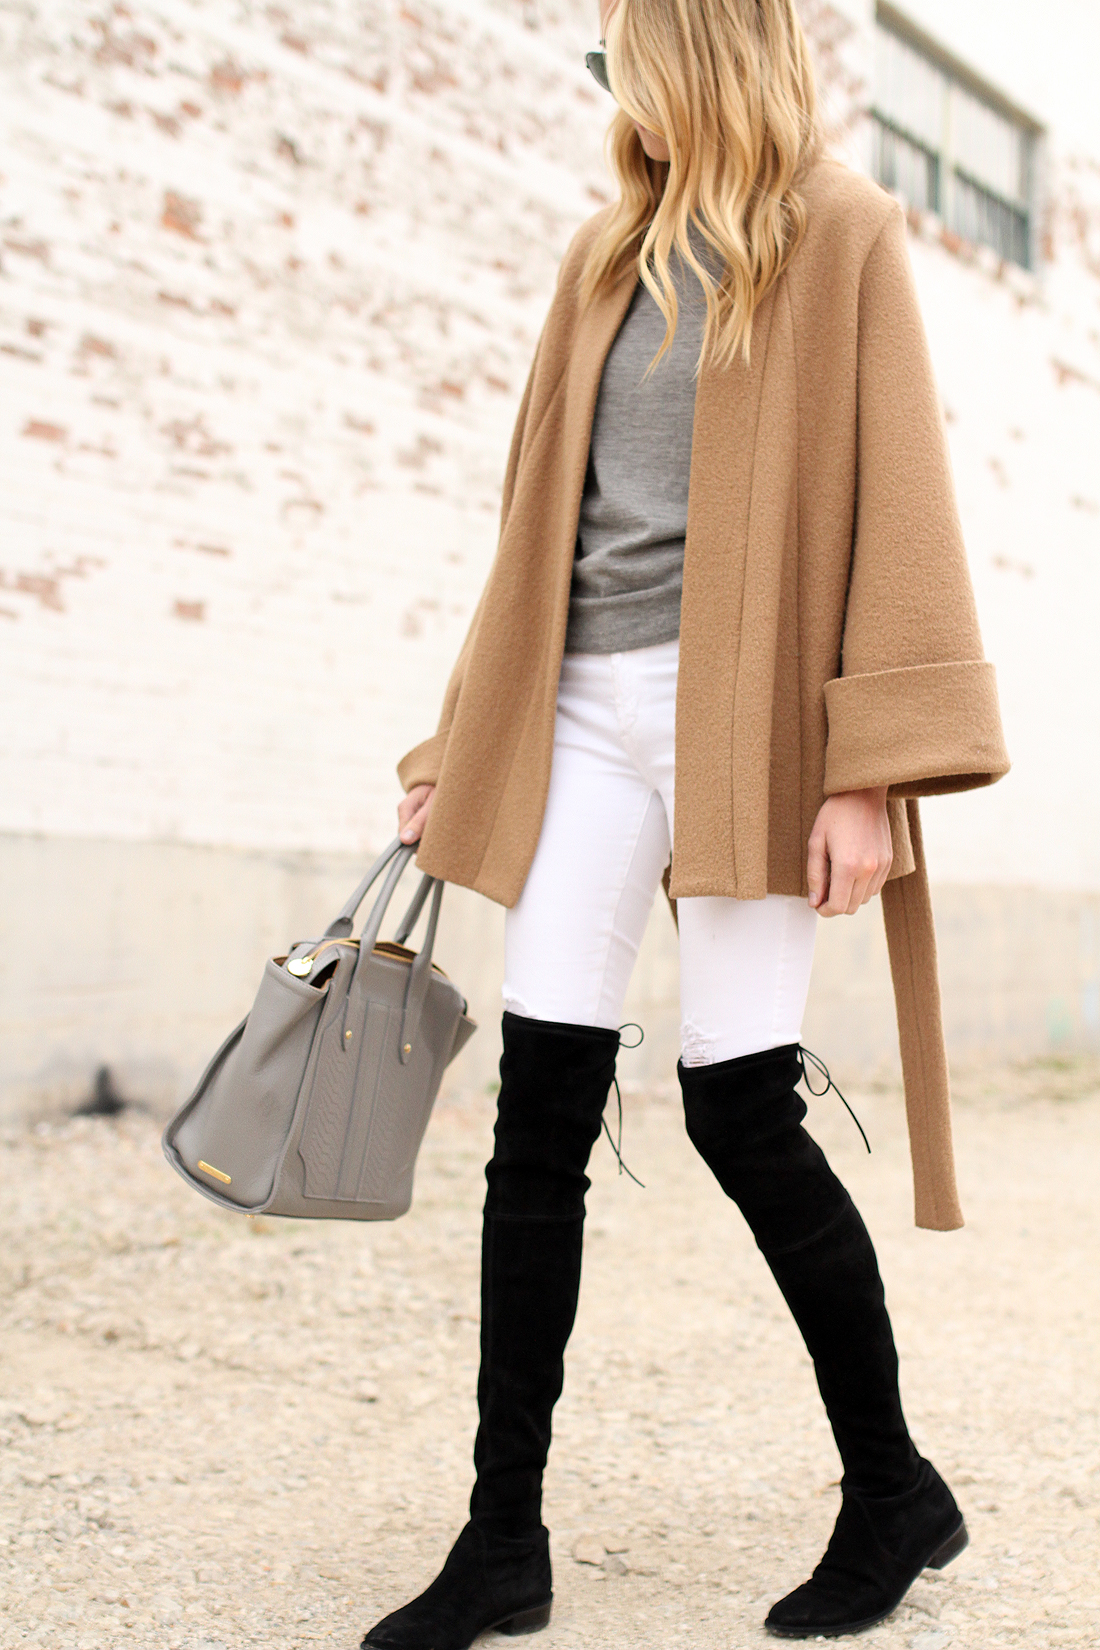 Welcome back friends! I hope yesterday was a FUN and beneficial shopping day for those of you with Early Access to the Nordstrom Anniversary Sale. Today I'm sharing your top 10 sale favorites and the best of Nordstrom Anniversary Sale jackets and cardigans! I chatted with several of you that.